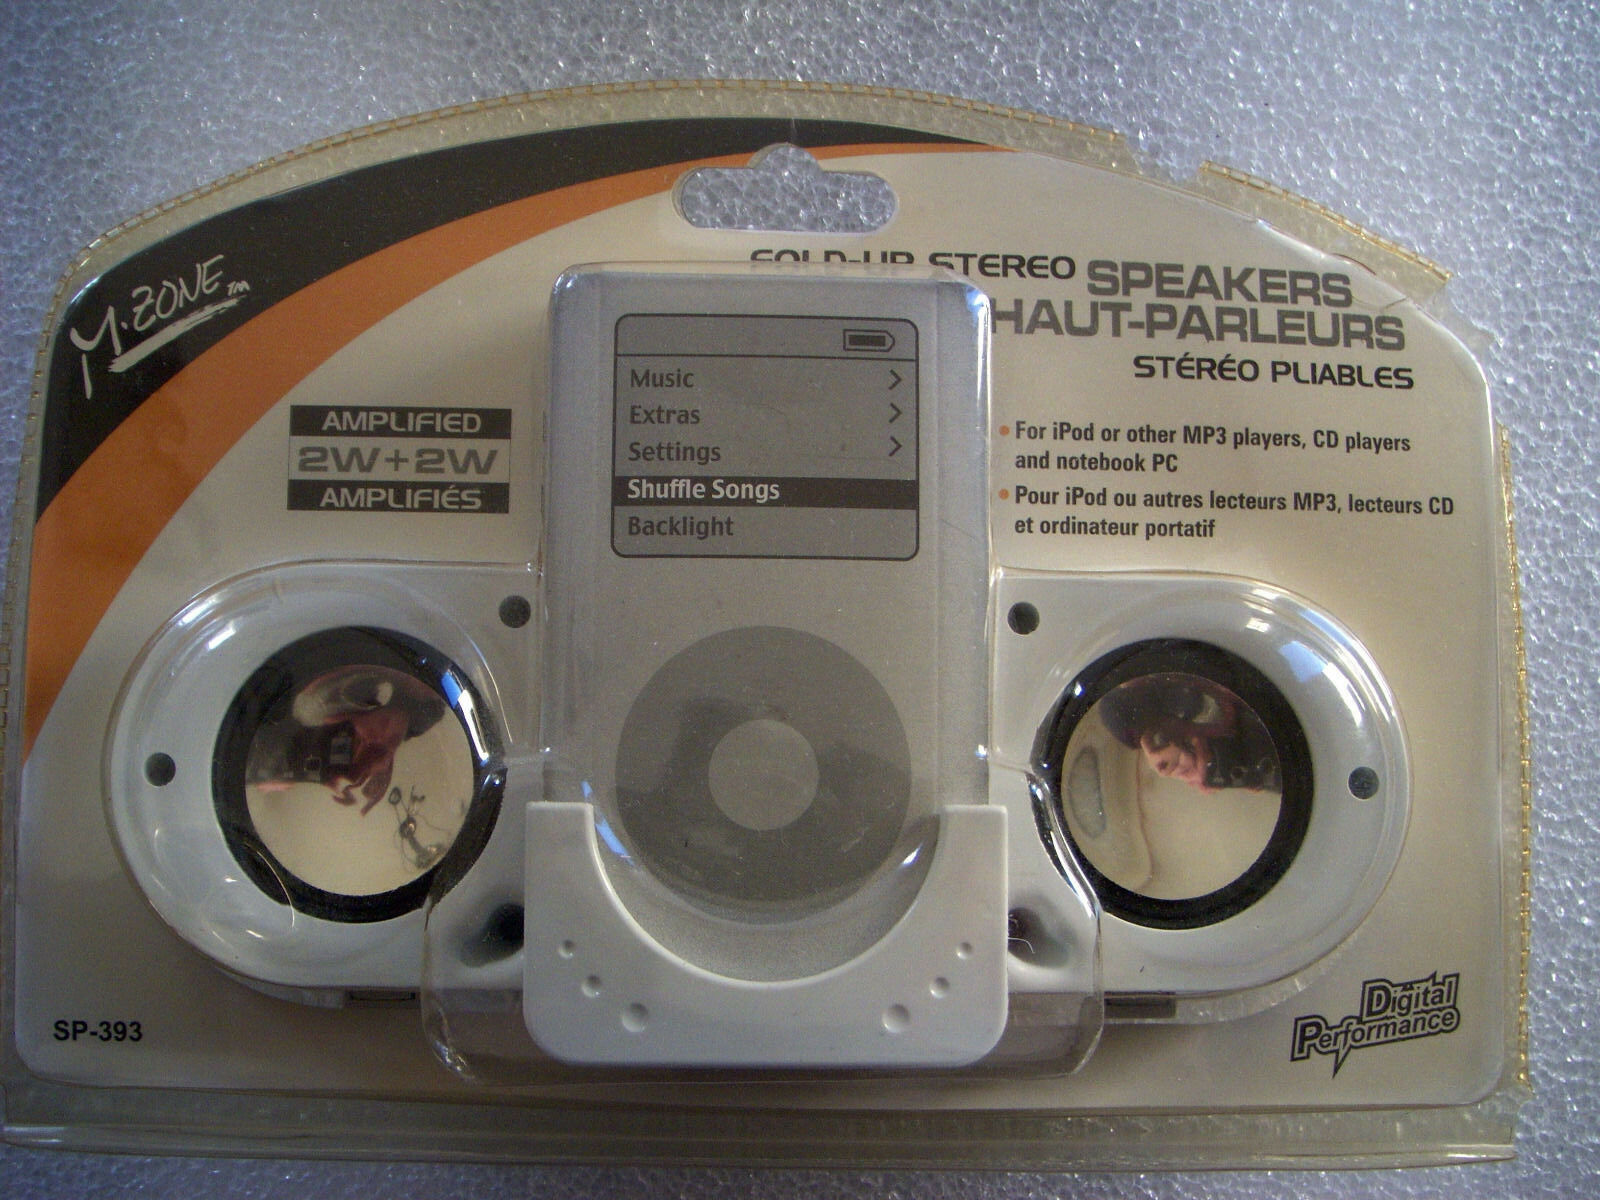 M-ZONE SP-393 Fold-Up Stereo Speakers Amplified 2W+2W( New)